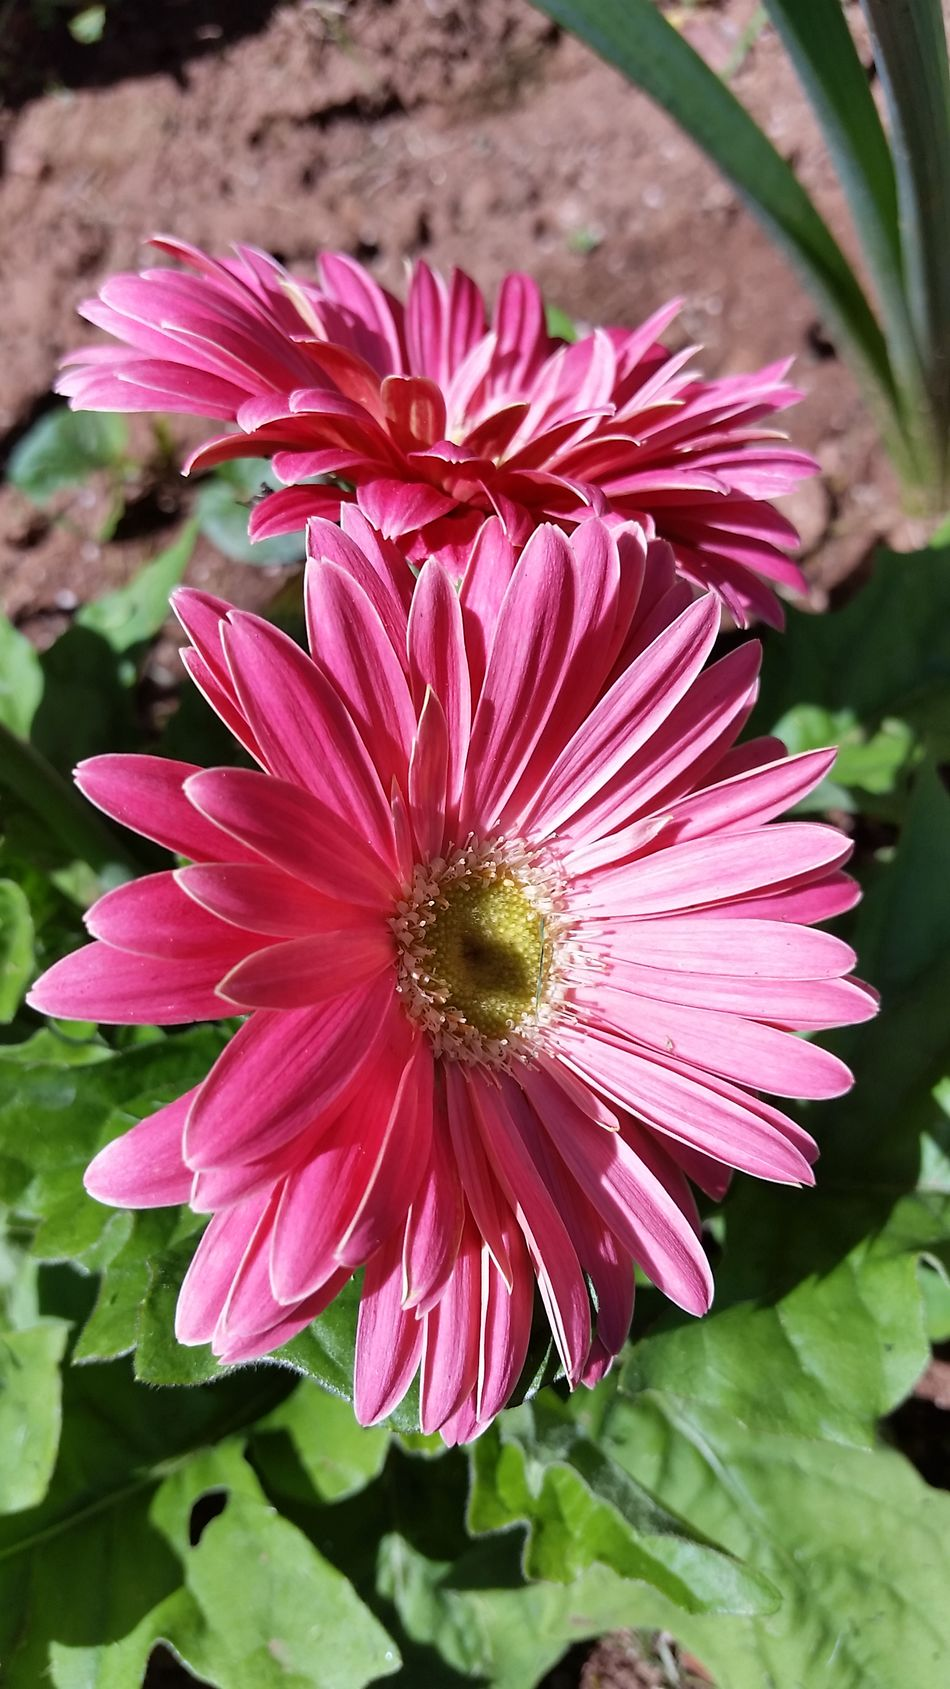 Gerberdaisies Hotpink Nature_collection Nature Photography Flowers Gardening Home Proud